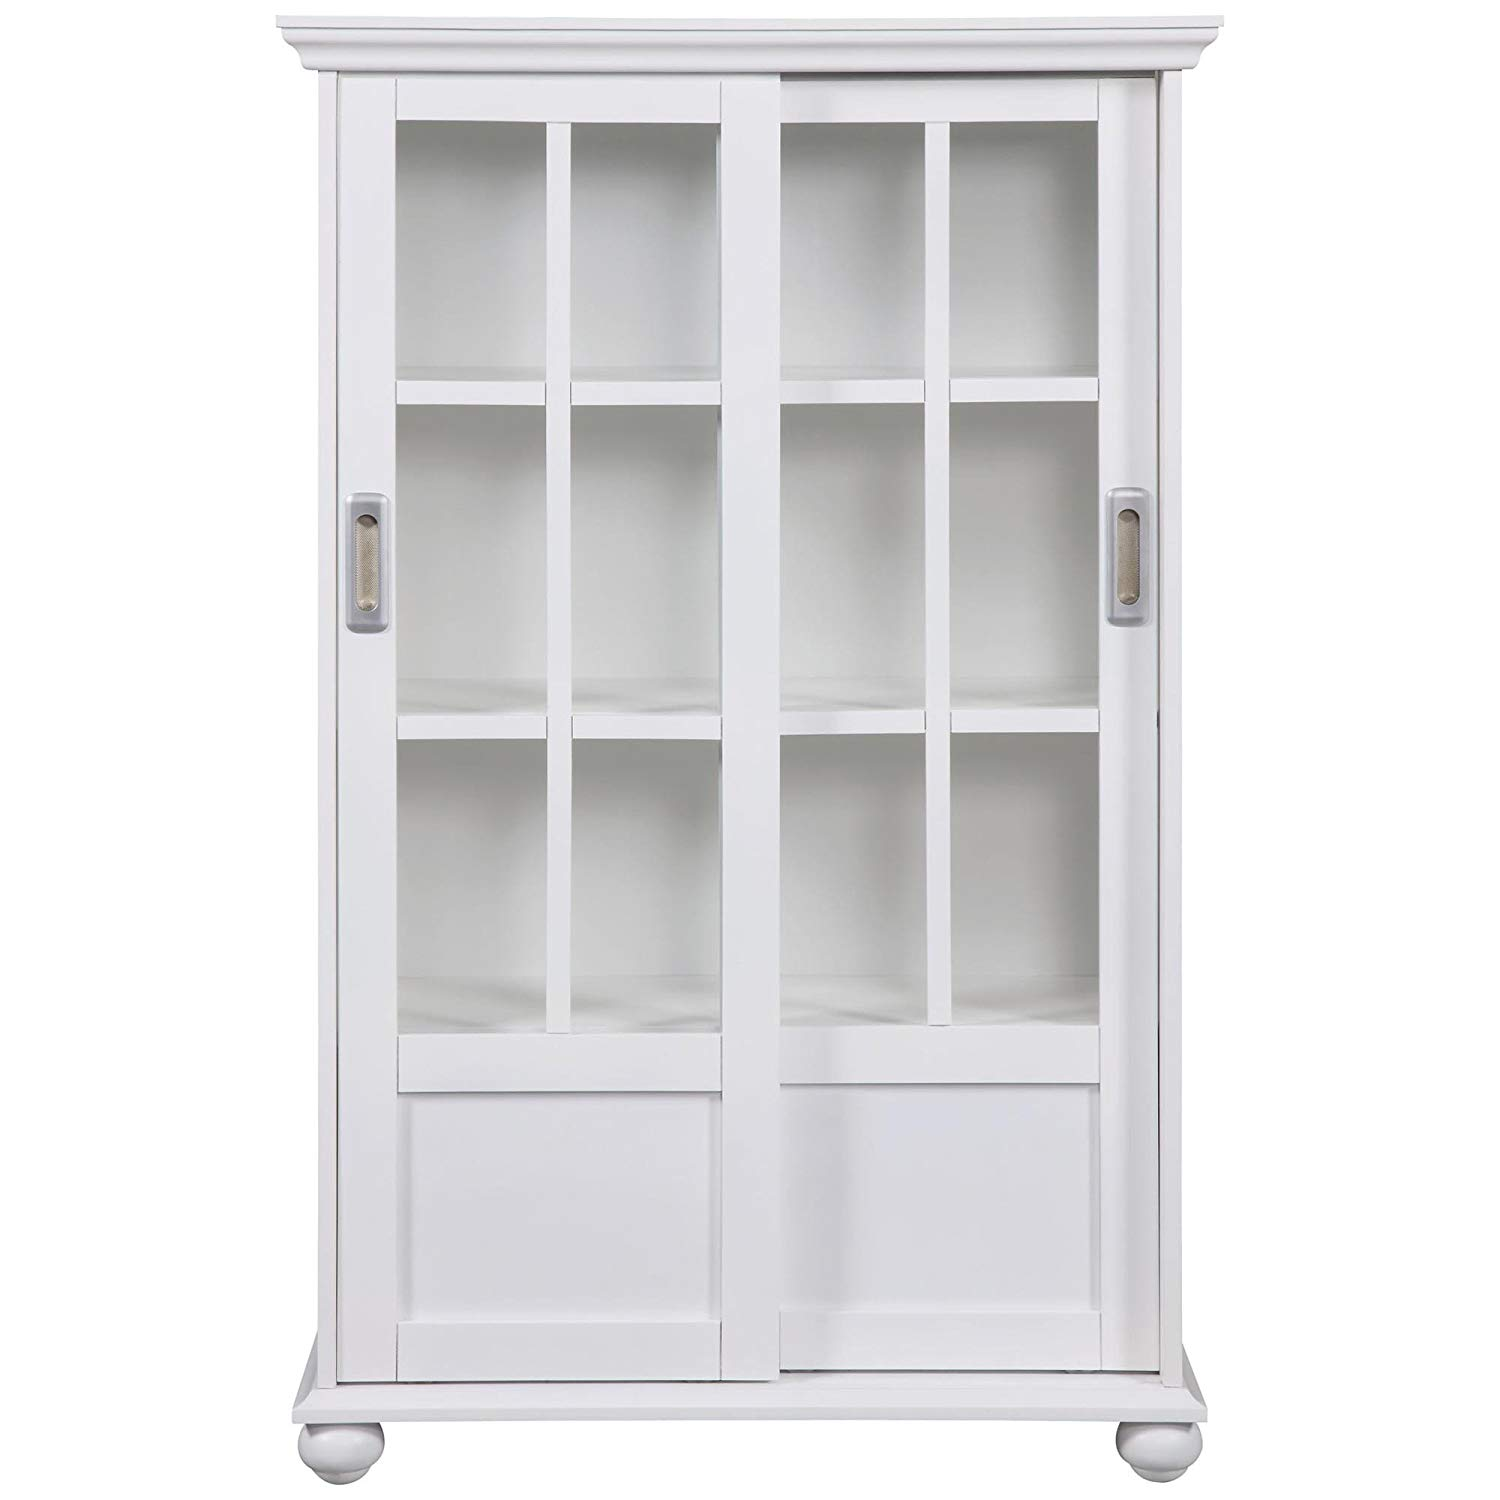 white bookcases amazon.com: altra 9448096 bookcase with sliding glass doors, white: kitchen XSZRXNO